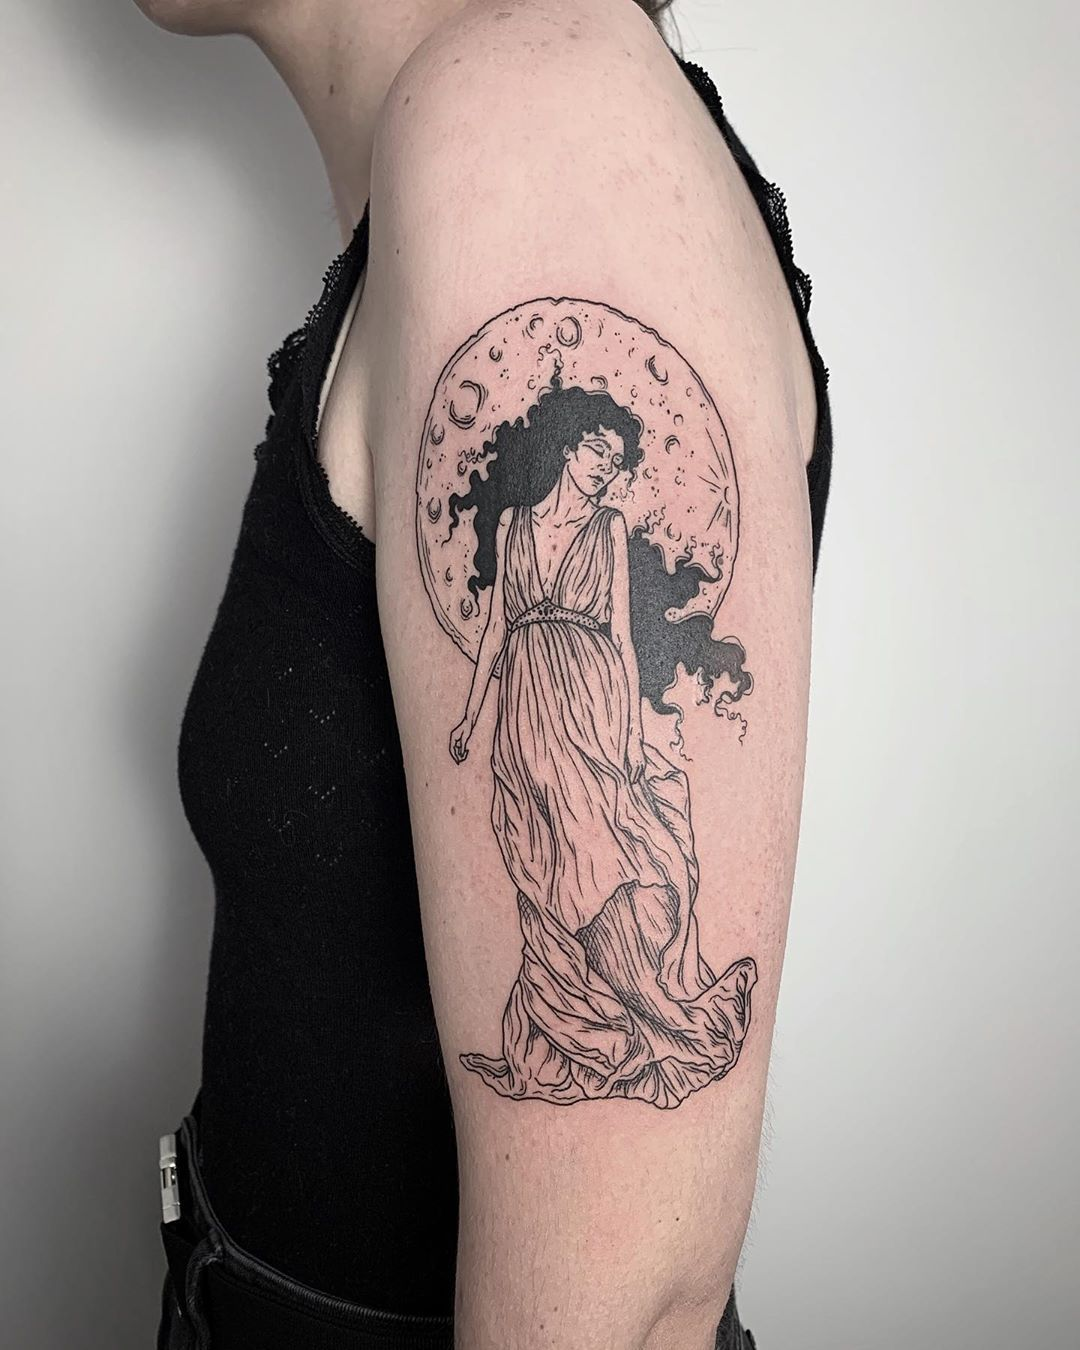 Baba Vesterka Tattoos On Instagram Moon Baby Thank You So Much For Coming To Melbourne And Being So Wonderful To Work With On Th Tattoos Instagram Wonder